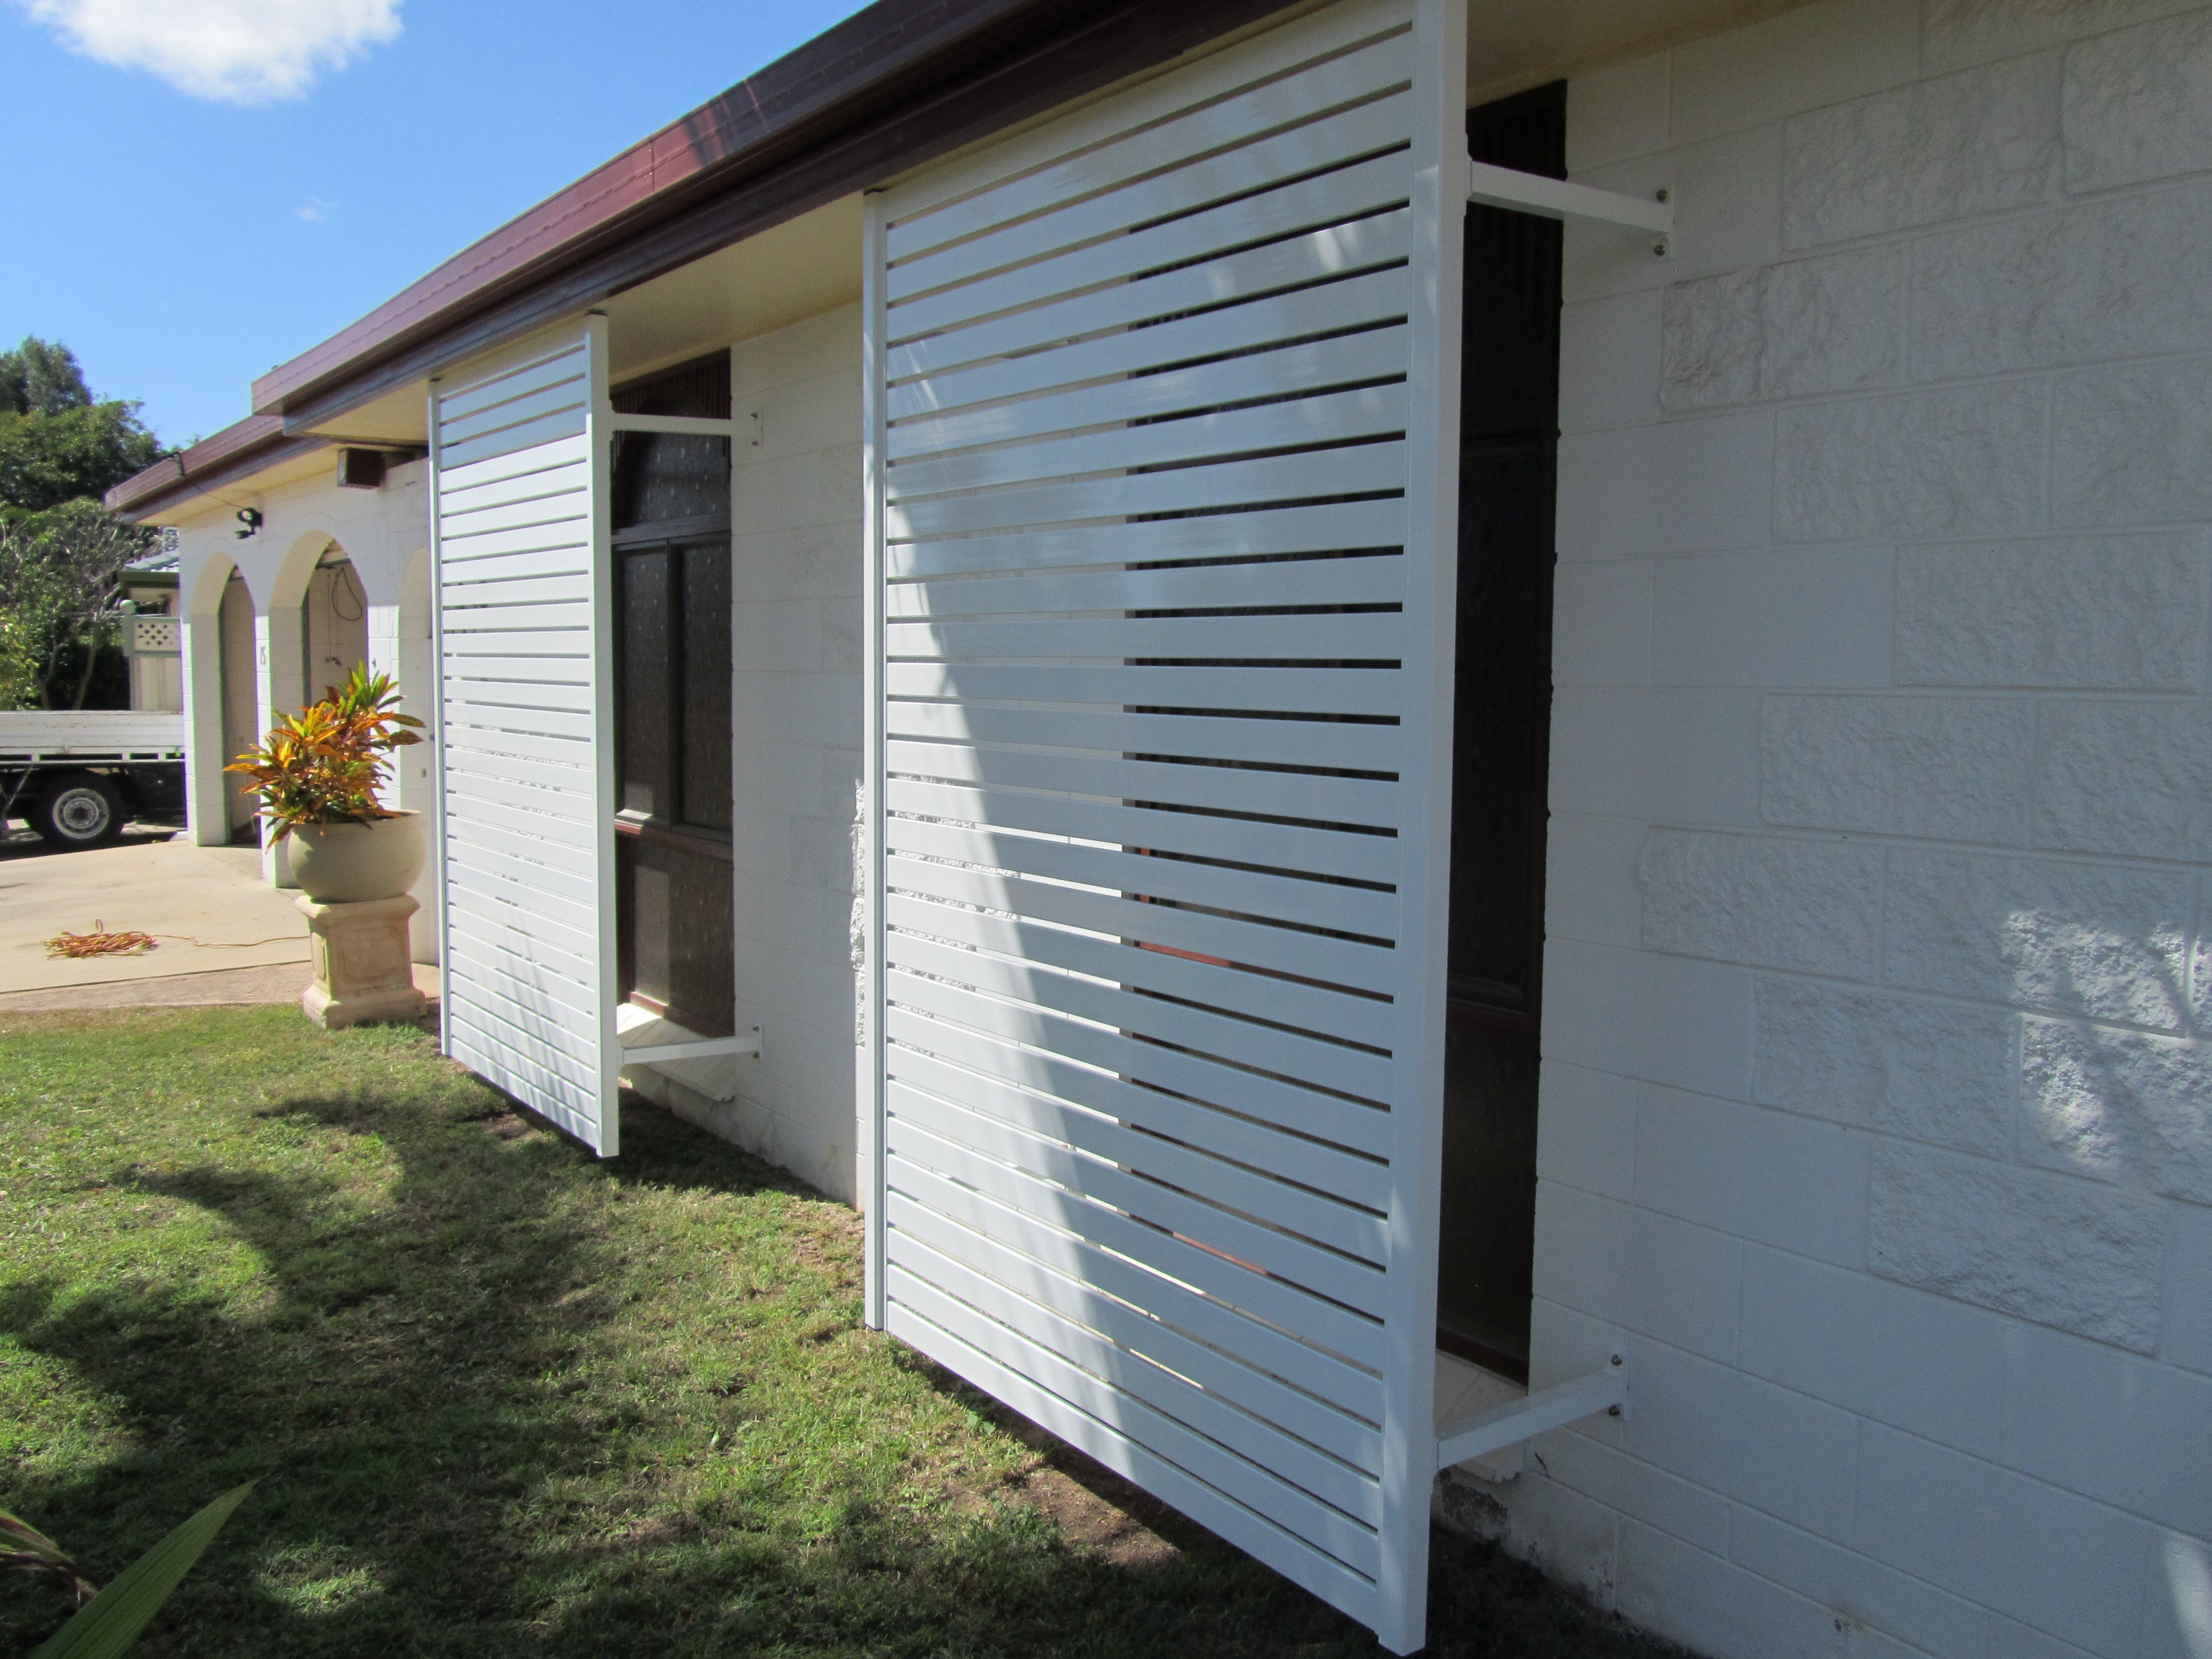 Slatscreens Are On Trend For External Window Coverings Exterior